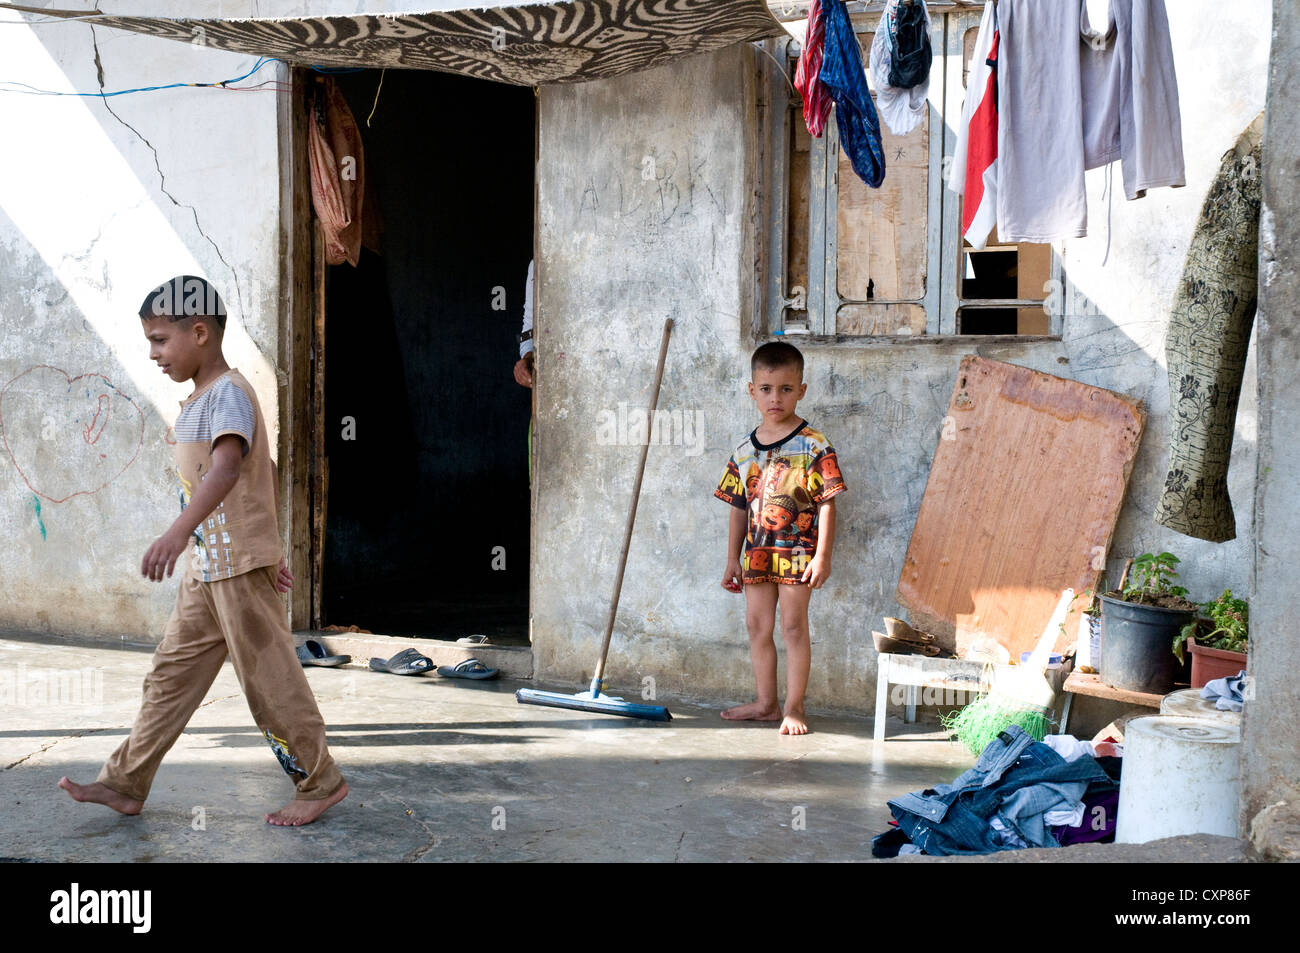 Syrian refugee children staying in a makeshift home in the Wadi Khaled region of northern Lebanon, along the Lebanese - Stock Image